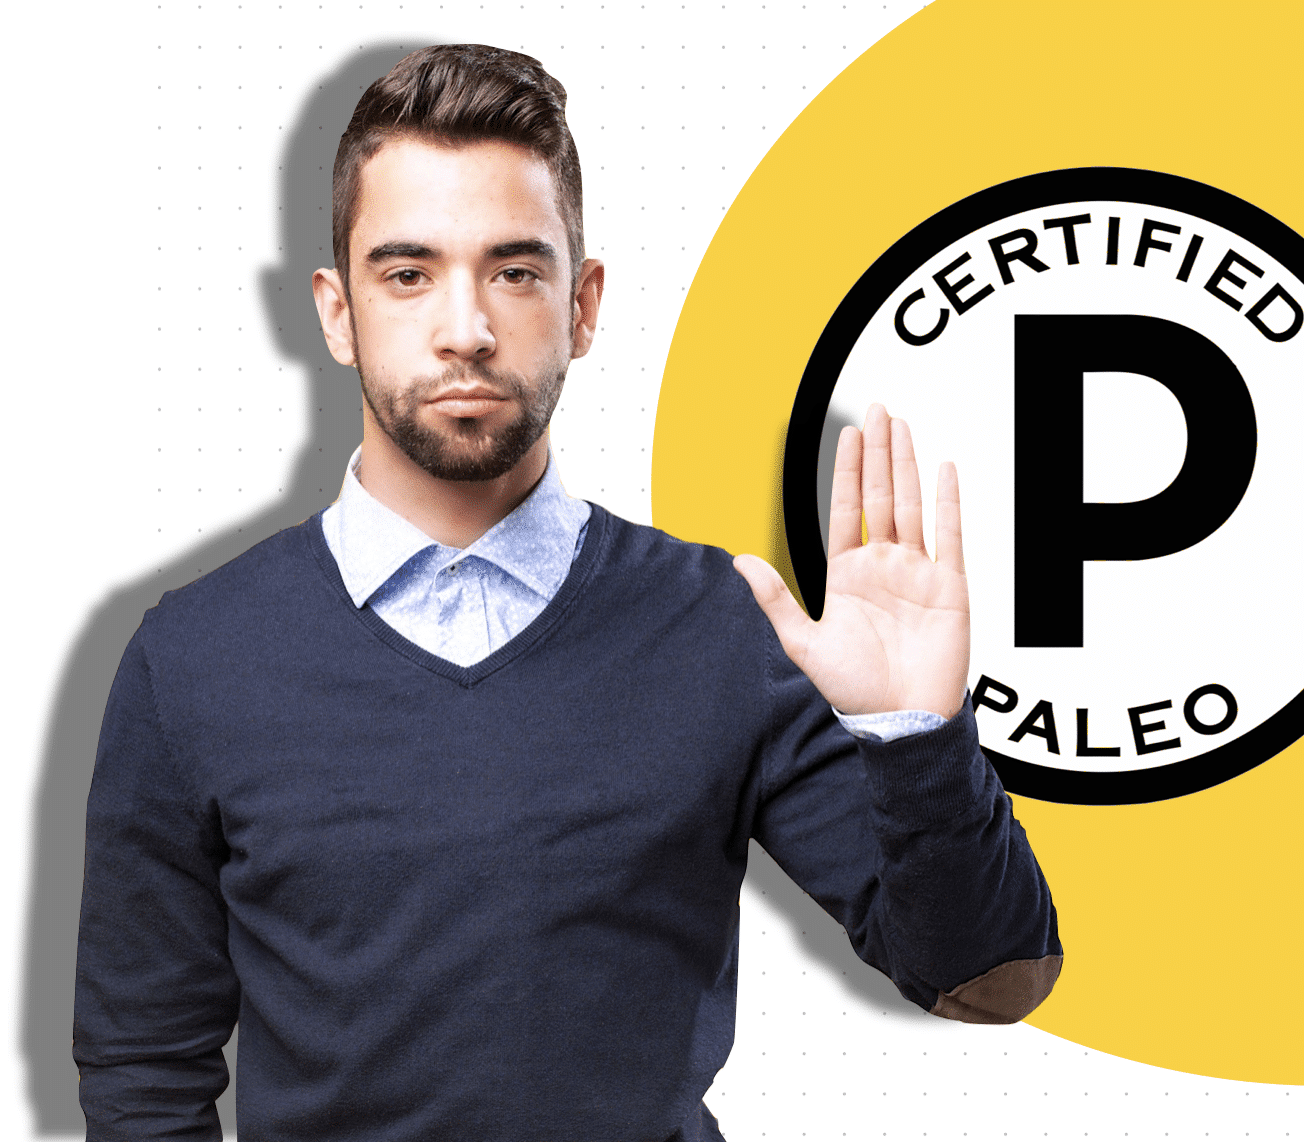 Paleo Certification Application For Paleo Products Paleo Foundation